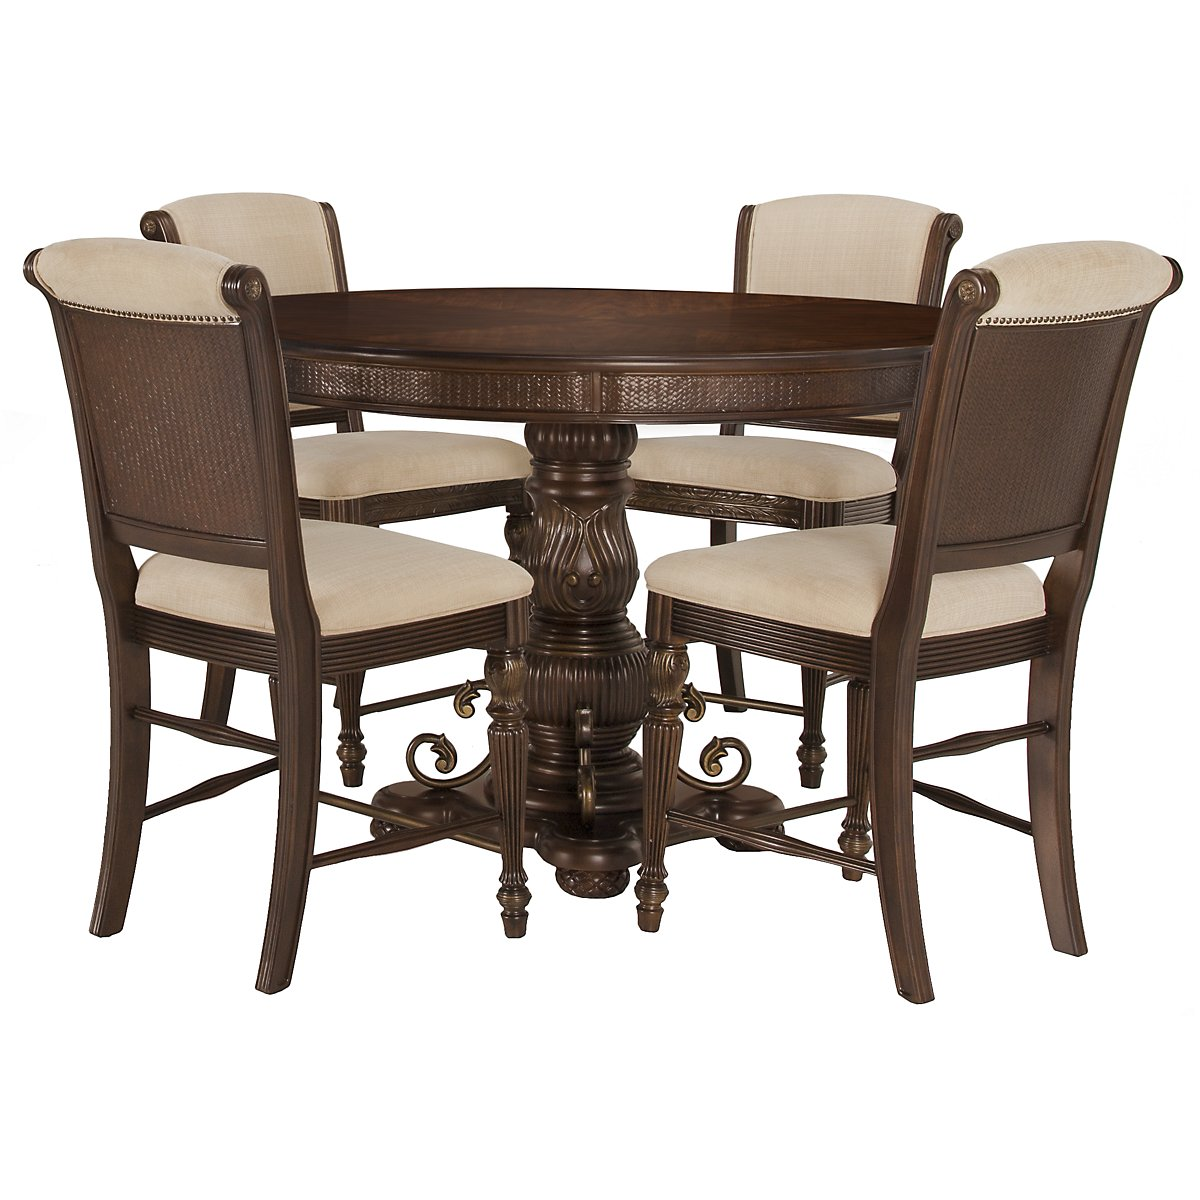 Tradewinds Dark Tone Wood High Table & 4 Upholstered Barstools